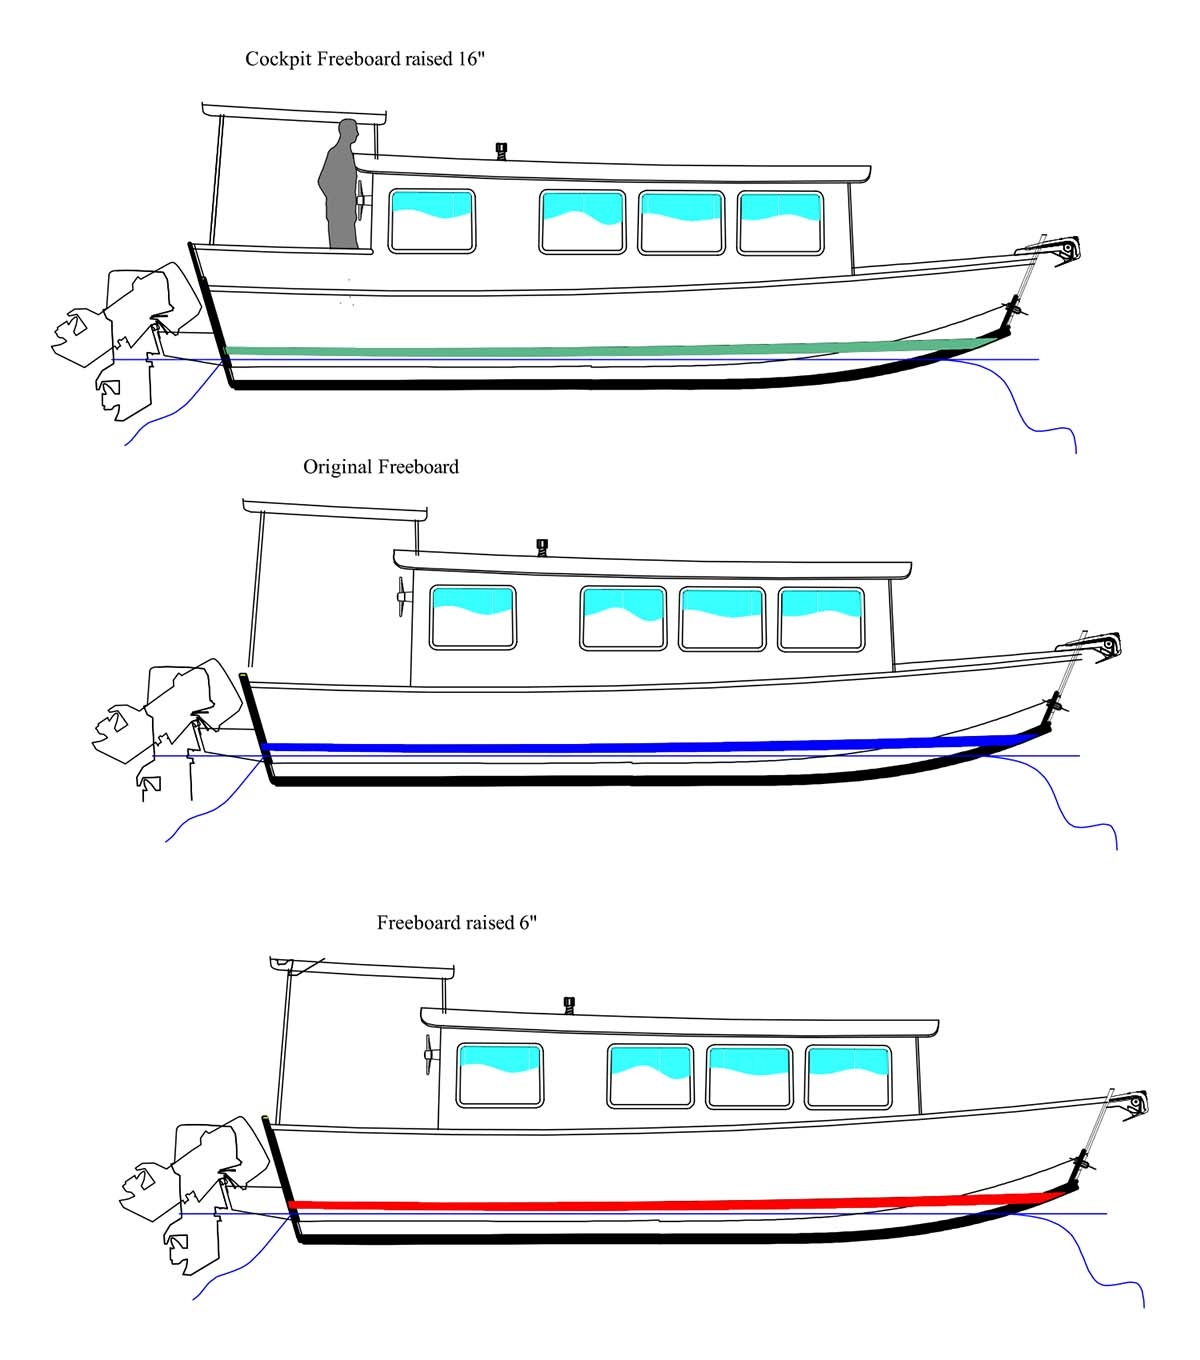 hight resolution of like her little sisters the little cod 21 and the lingcod 24 the lingcod 27 is a garvey type boat bow transom vee bottomed and makes for a really good